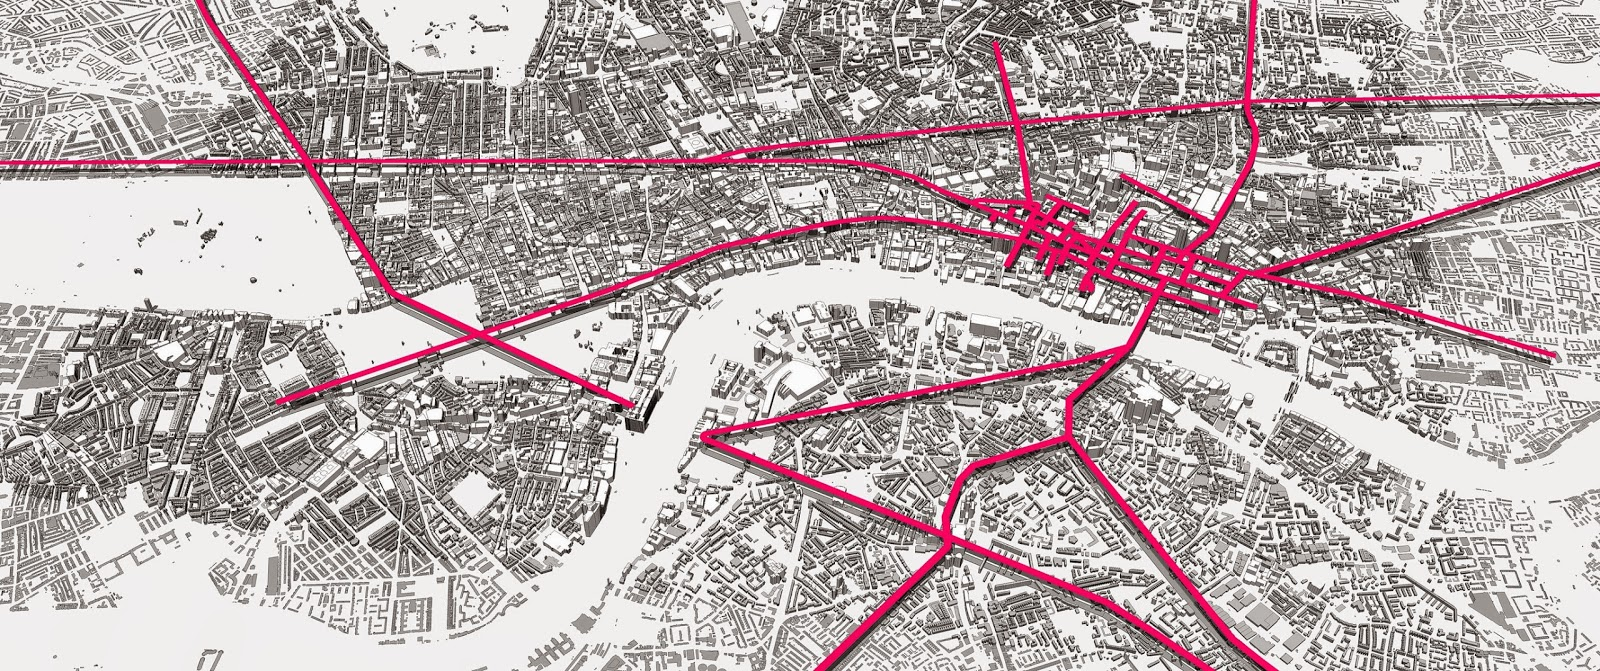 London in time | A London's Evolution Animation